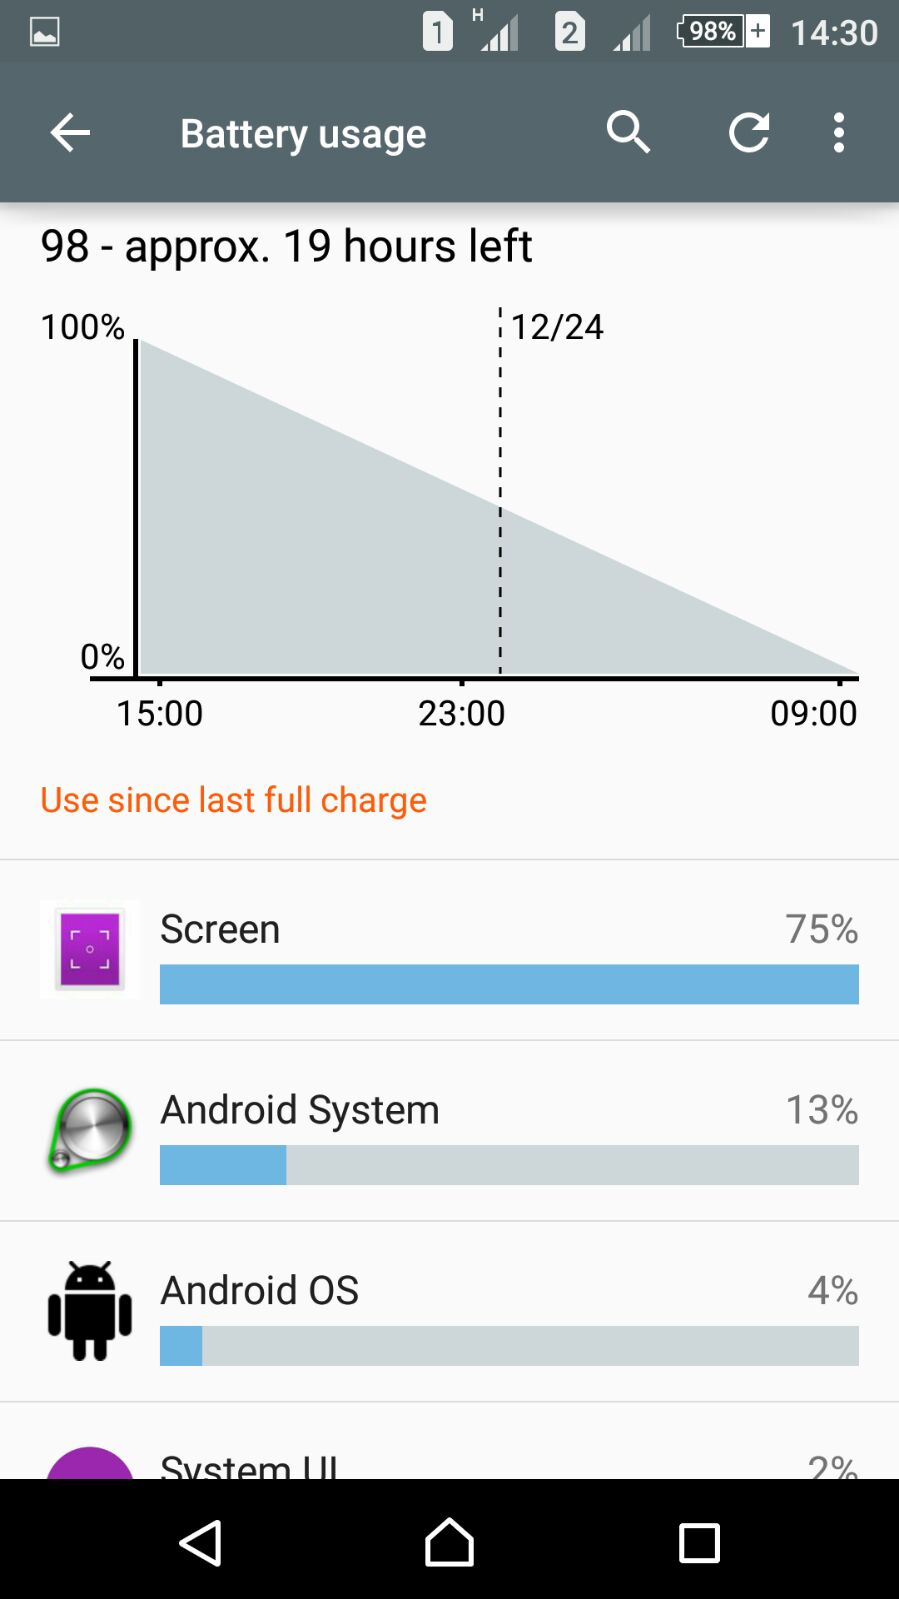 Sony Xperia C5 Ultra Battery Usage